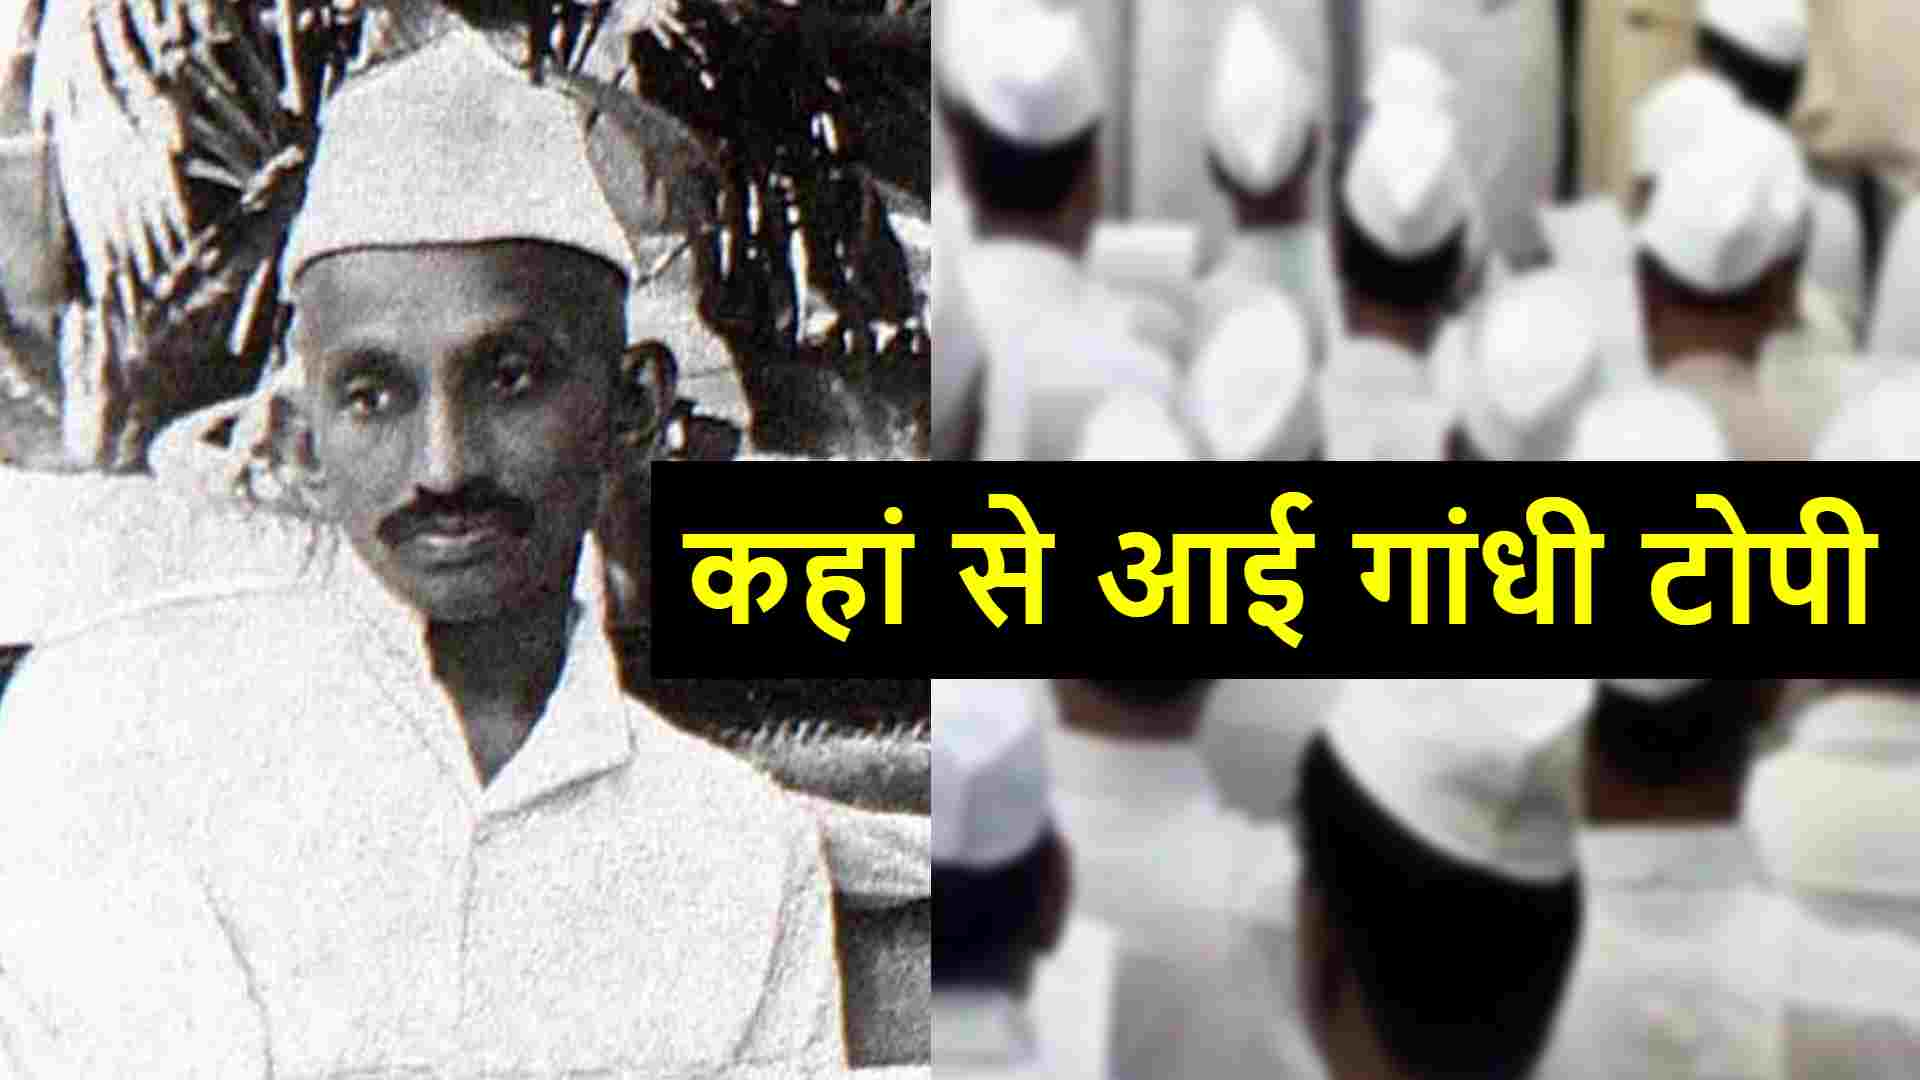 Where did the Gandhi cap come from?